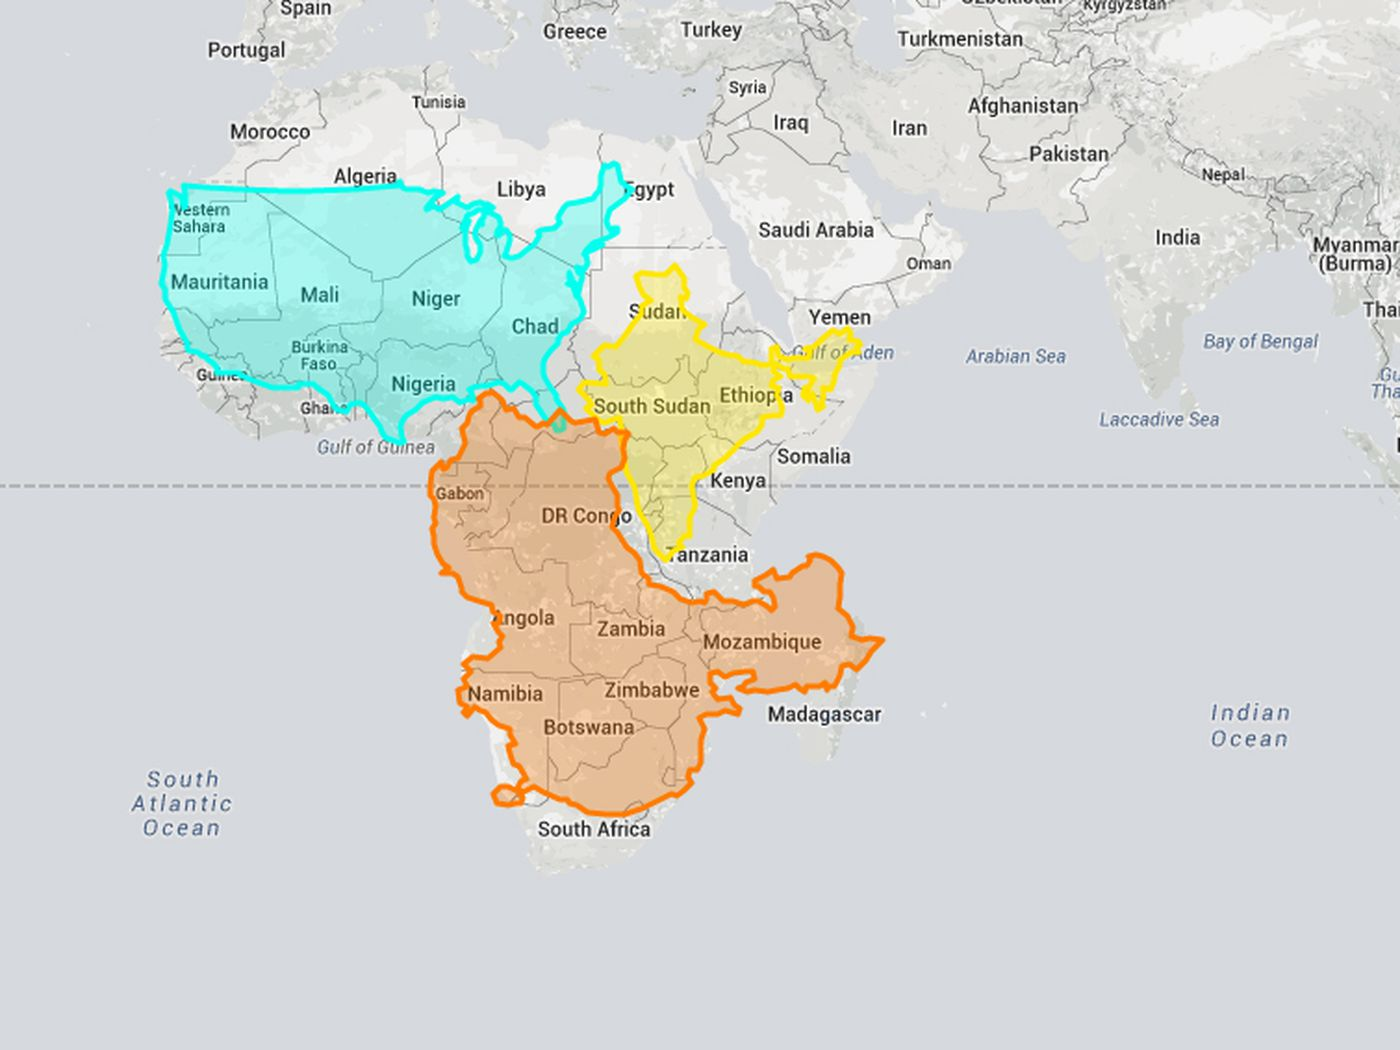 This interactive website shows how wrong mercator projections can be this interactive website shows how wrong mercator projections can be vox gumiabroncs Image collections